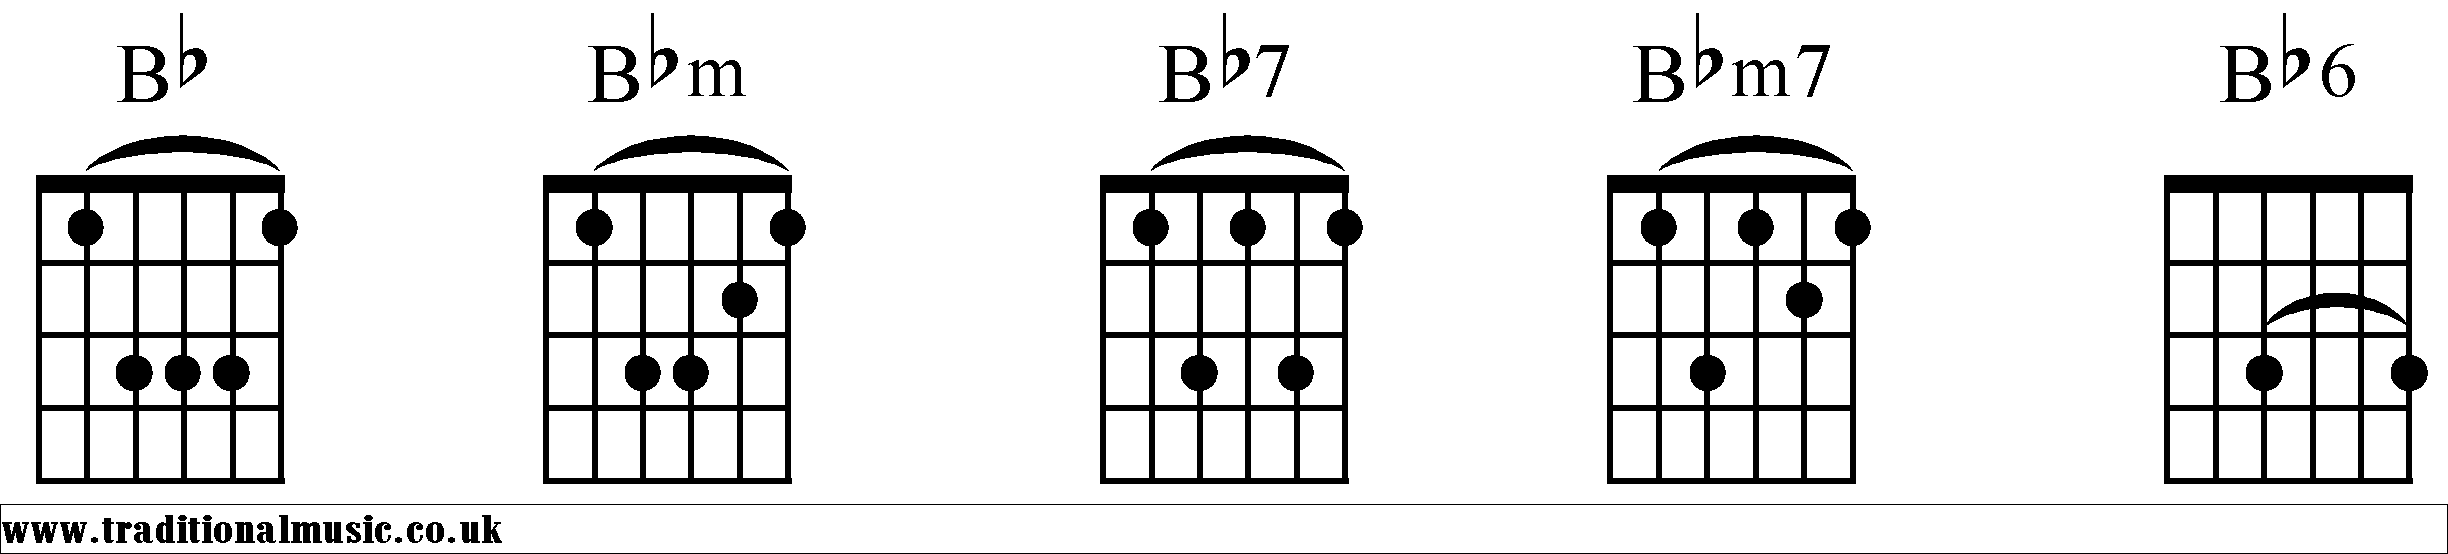 Chords starting Ab for Guitar in standard tuning